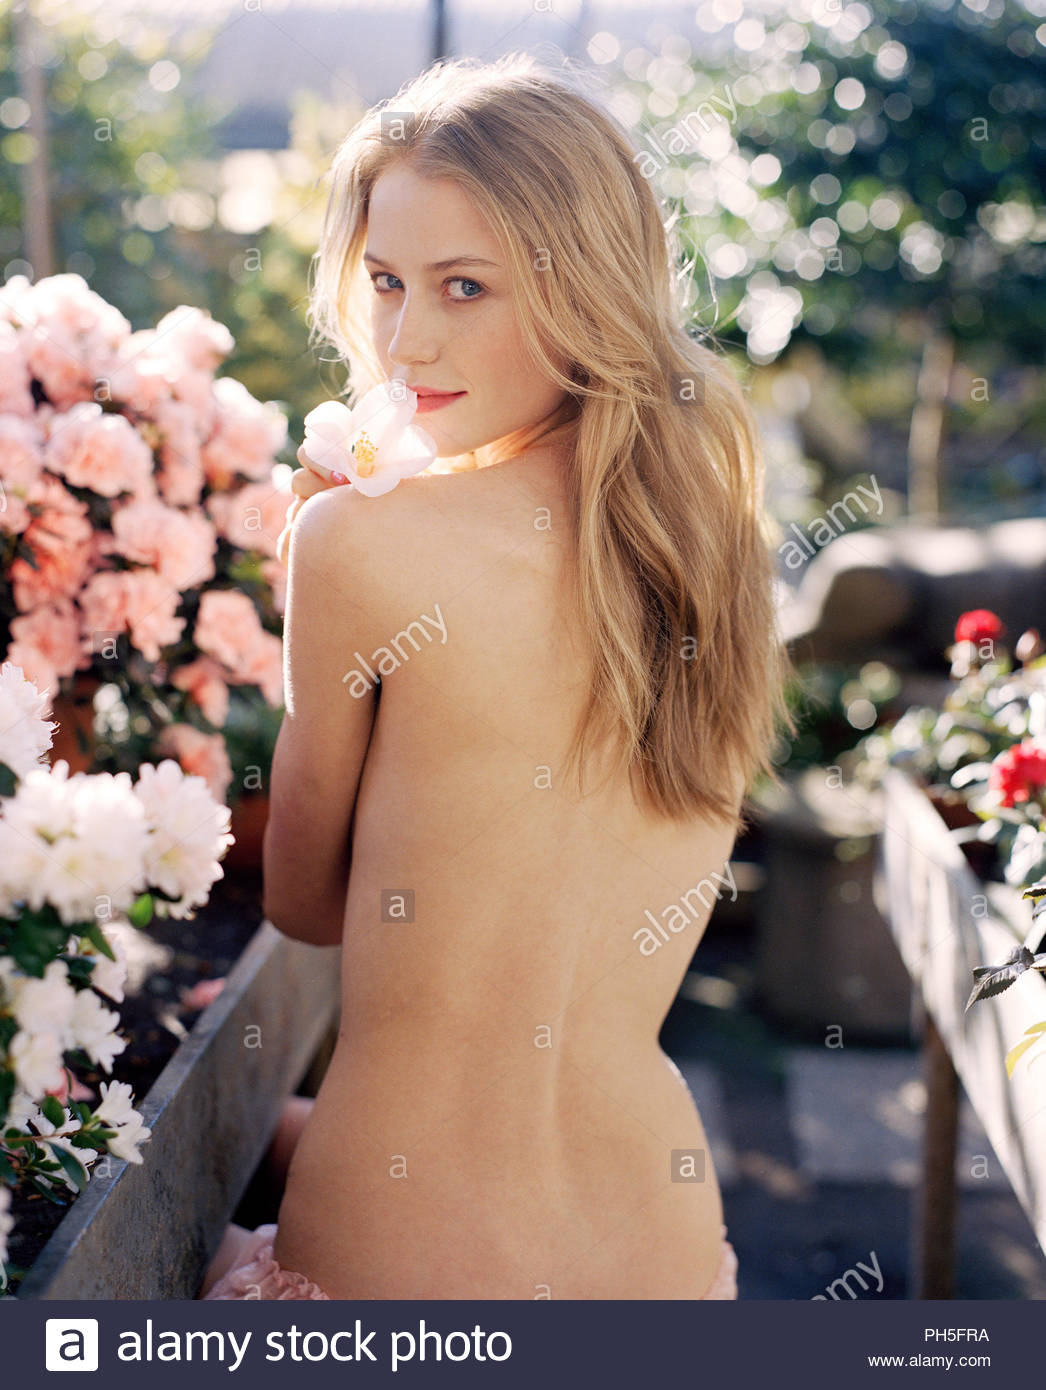 Shirtless young woman in flower garden - Stock Image